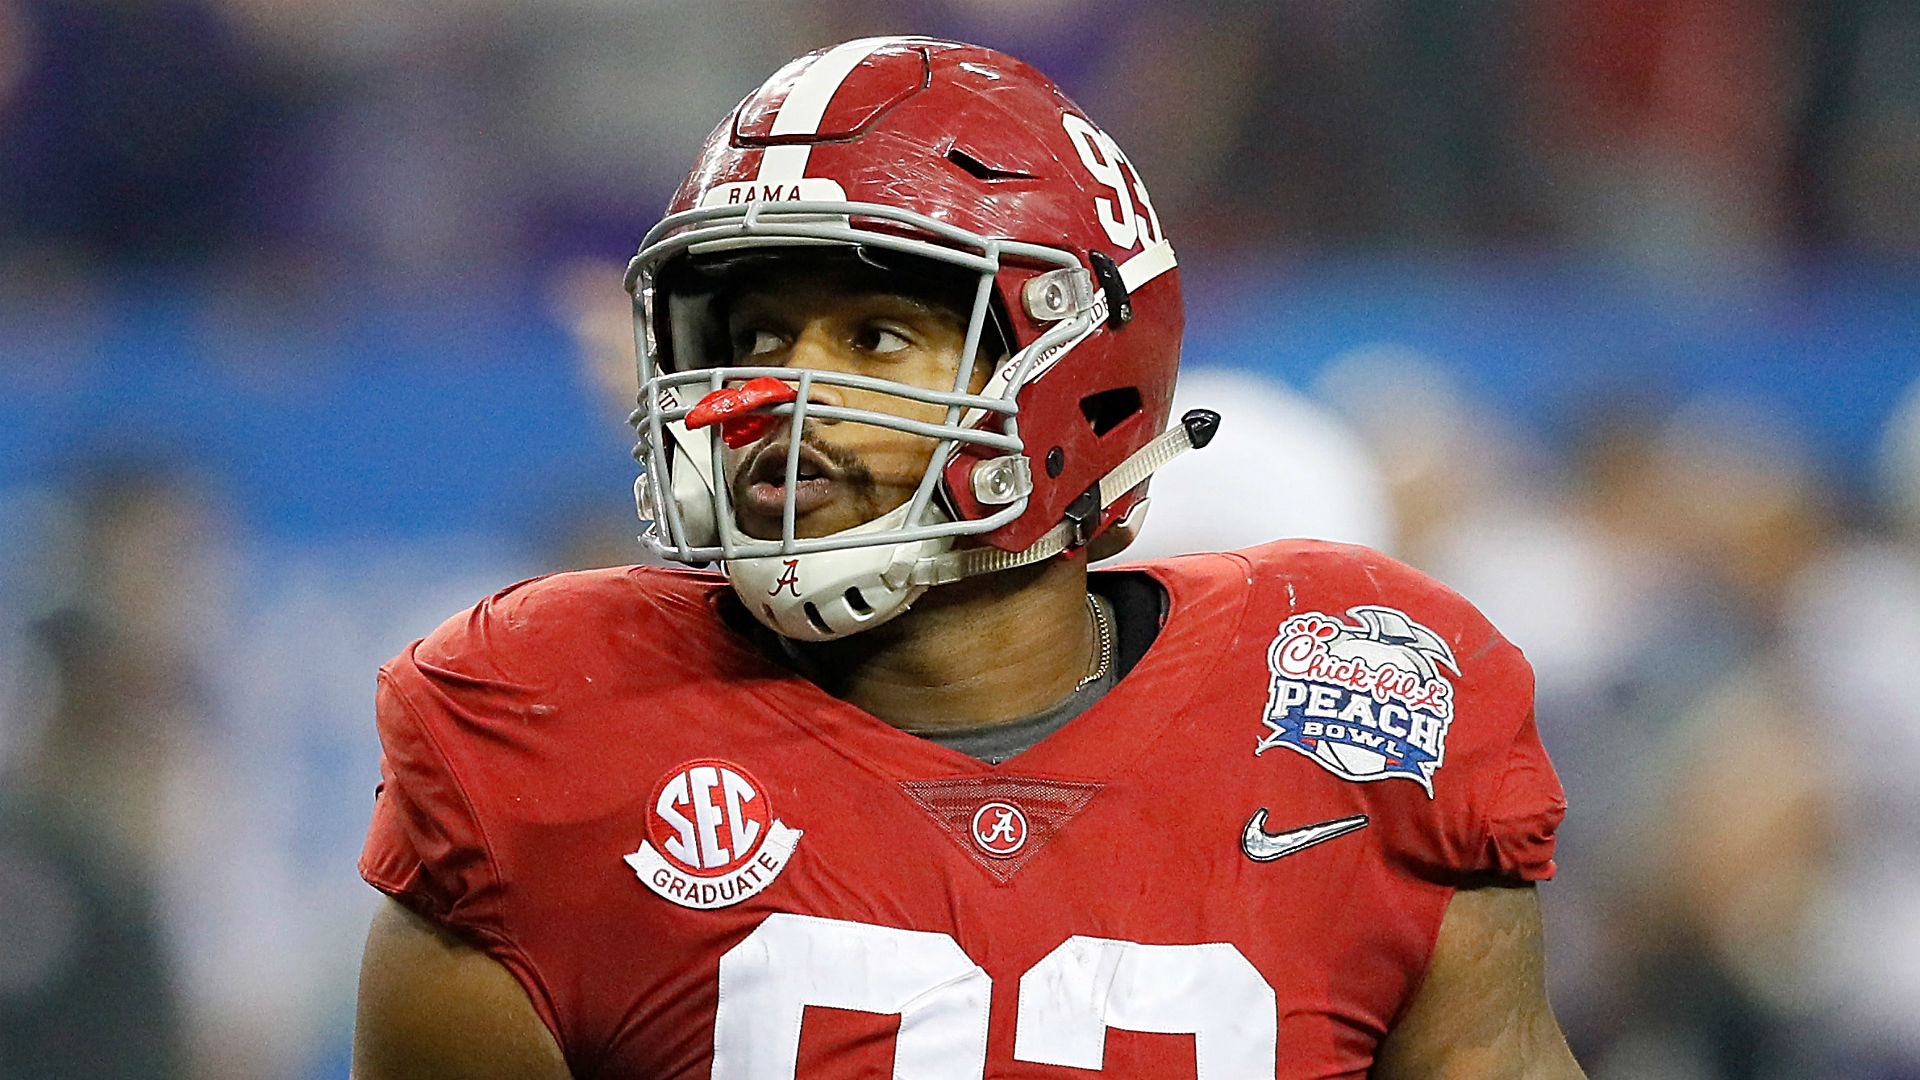 Alabama DE Jonathan Allen falls to Redskins